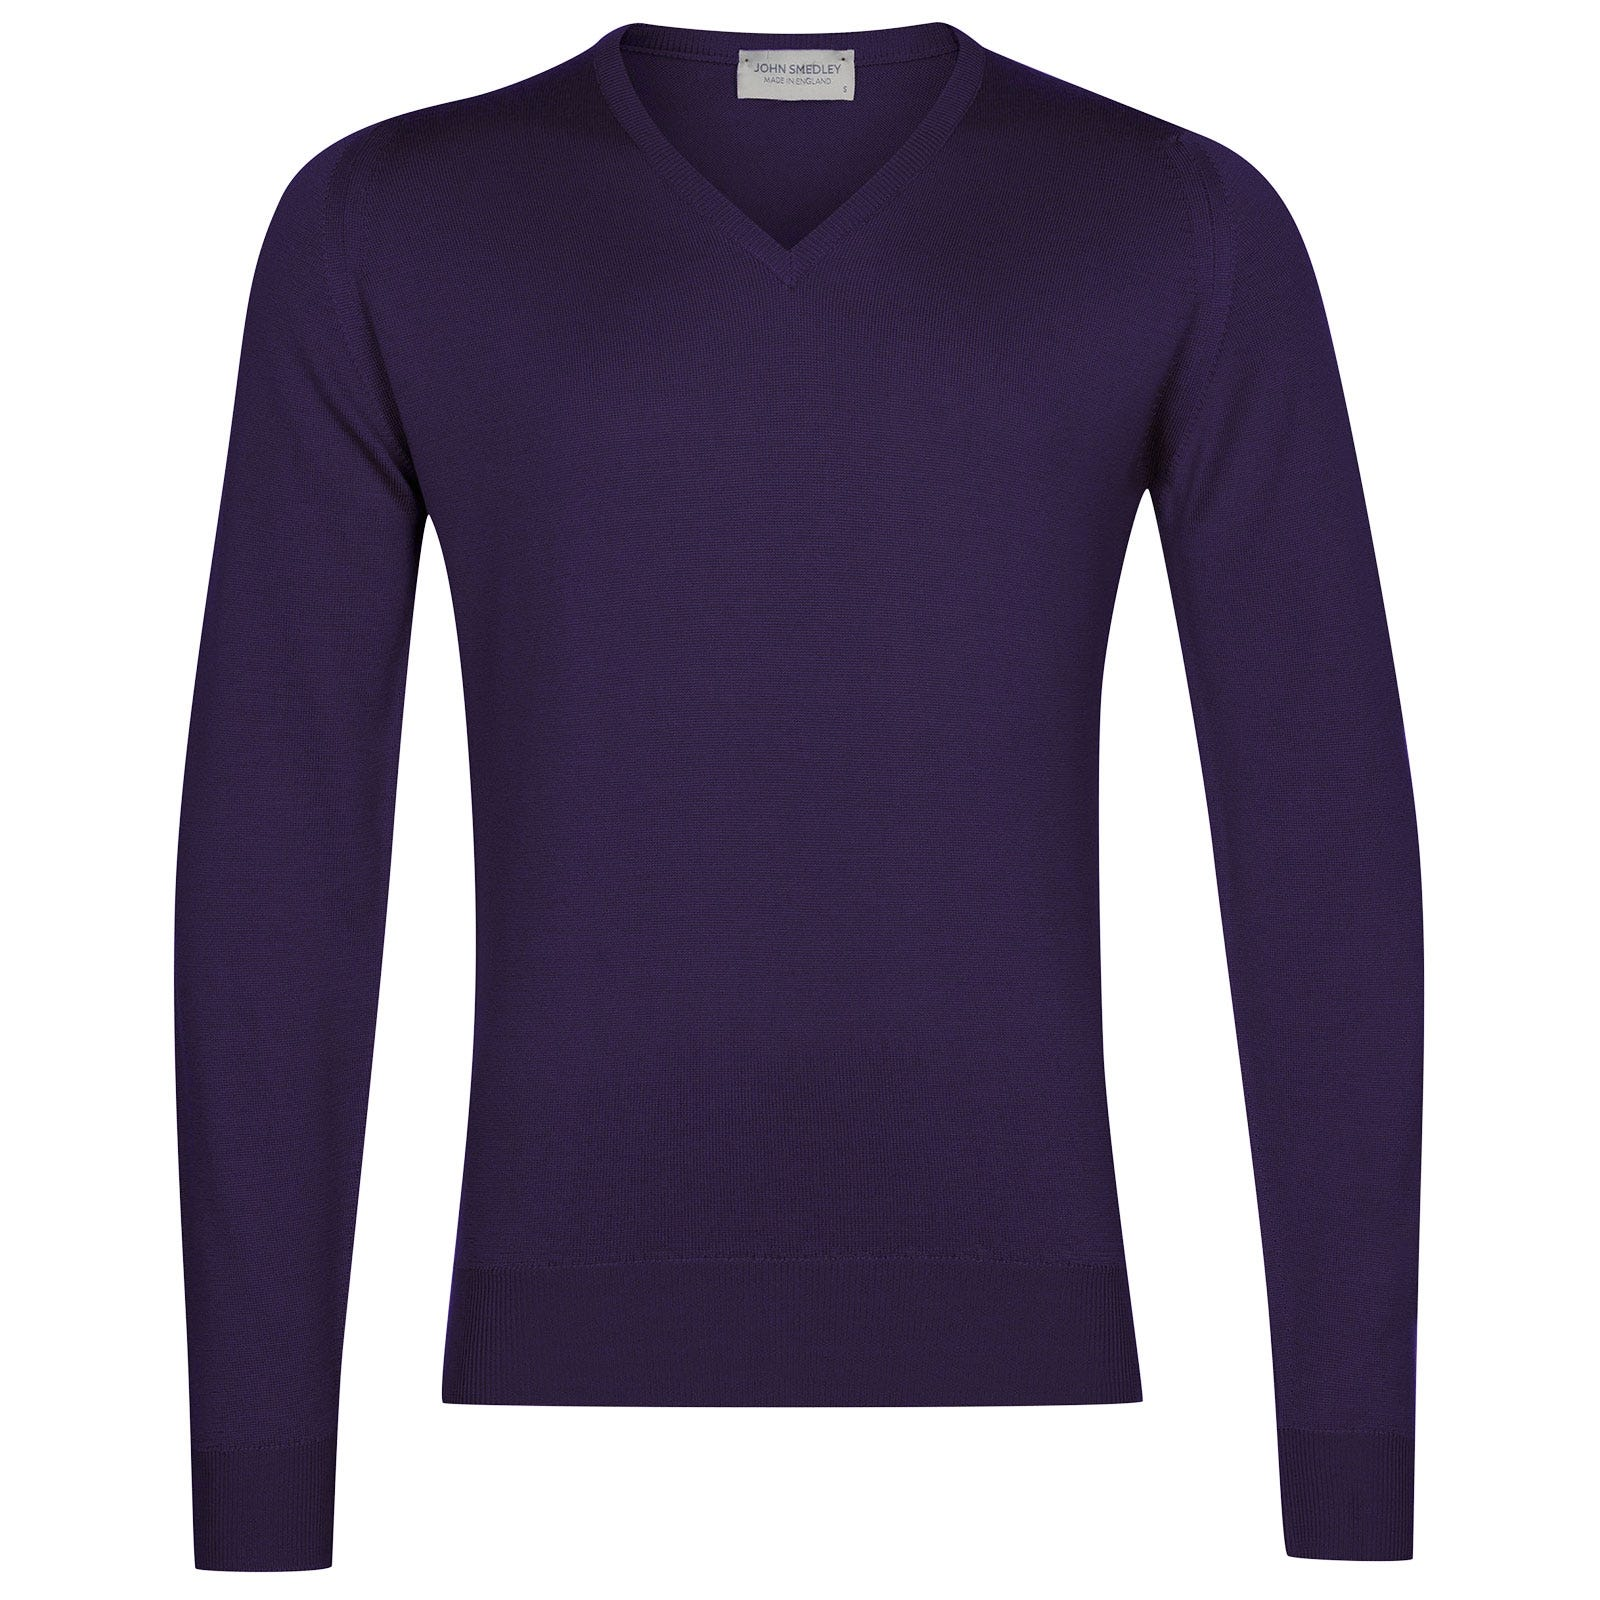 John Smedley Blenheim Merino Wool Pullover in Elderberry Purple-L